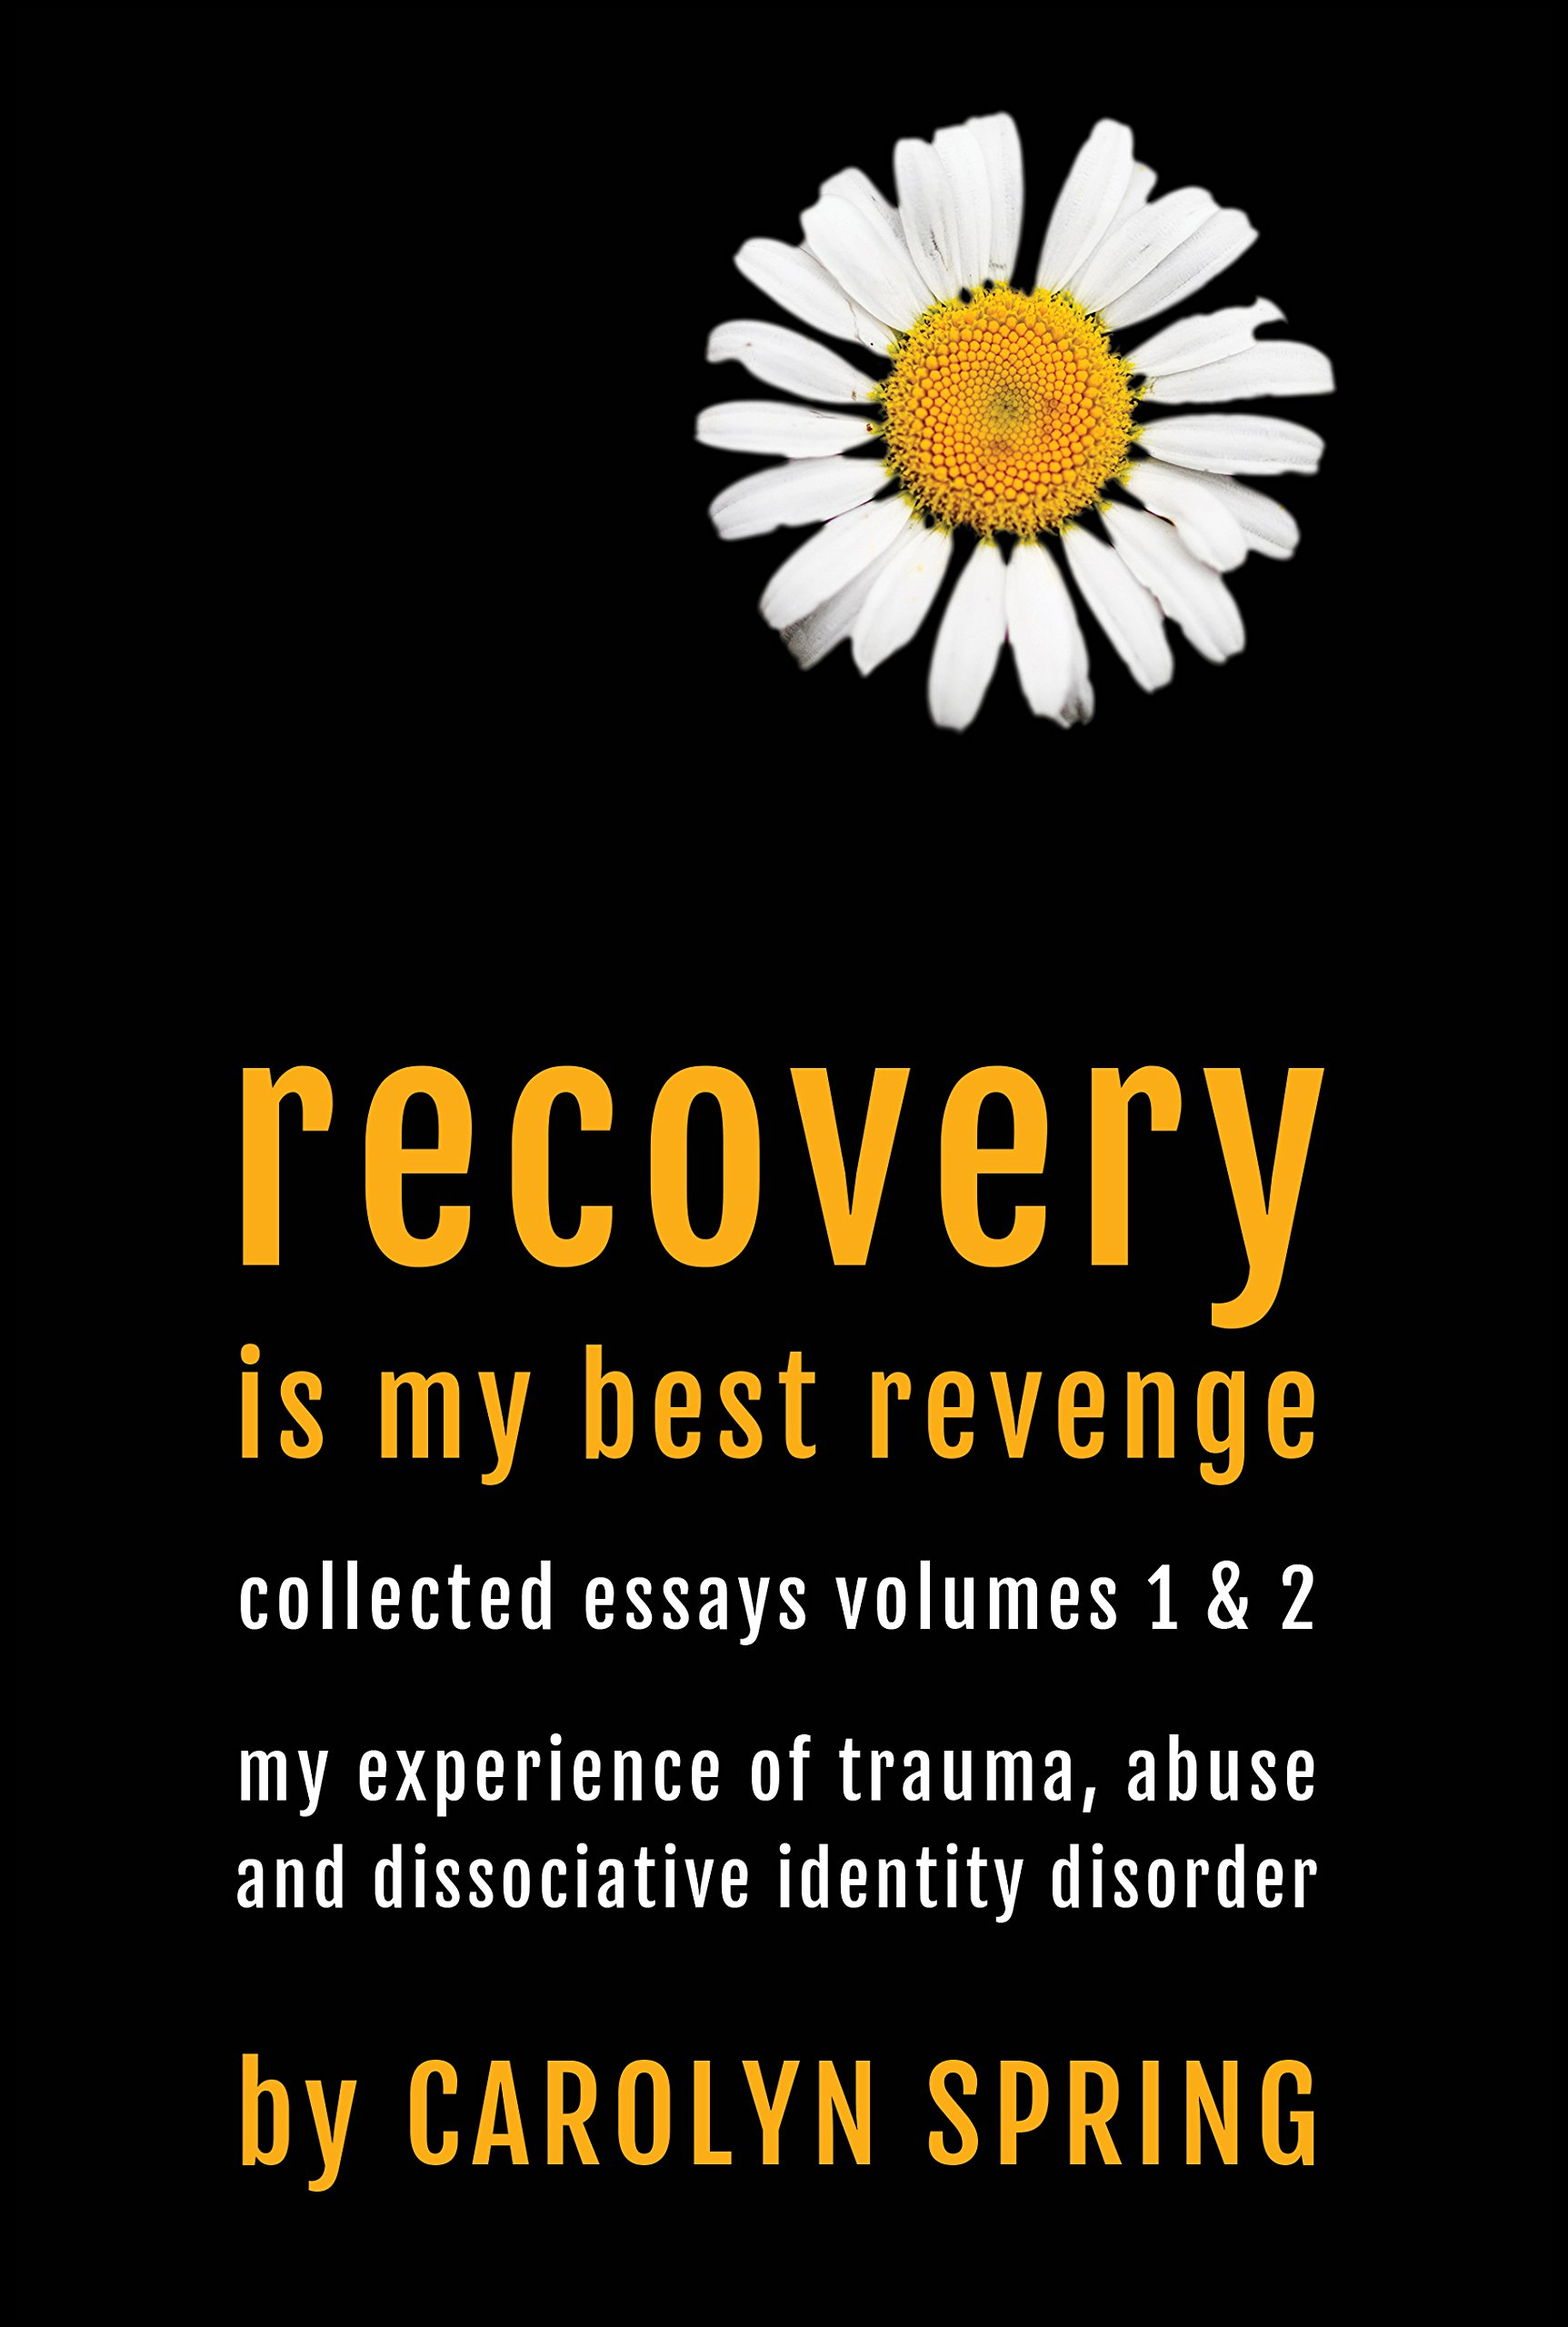 the dissociative identity disorder sourcebook sourcebooks recovery is my best revenge my experience of trauma abuse and dissociative identity disorder